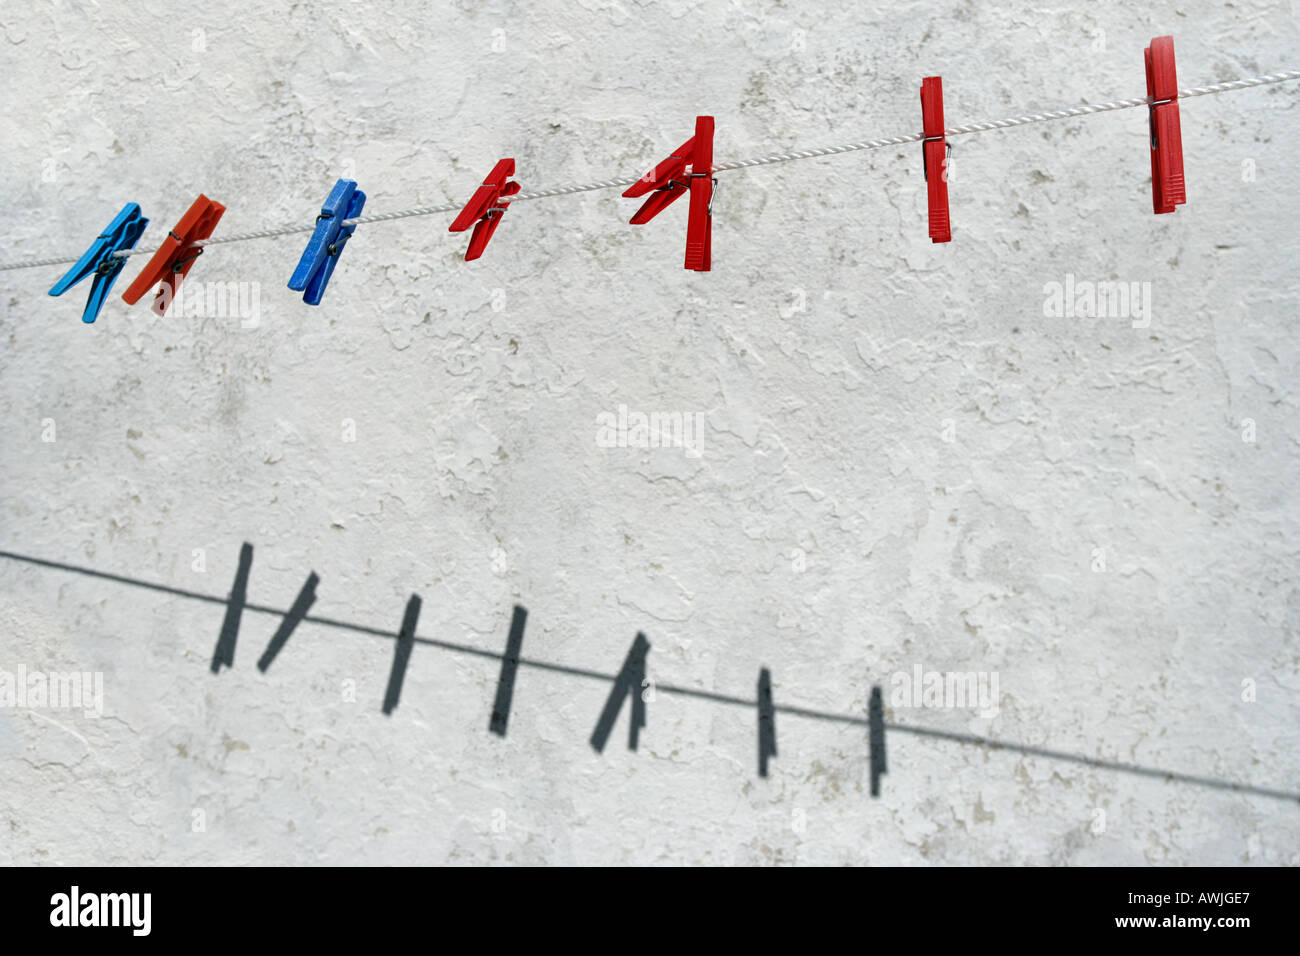 Colored plastic clothespins hanging from a clothes line - Stock Image